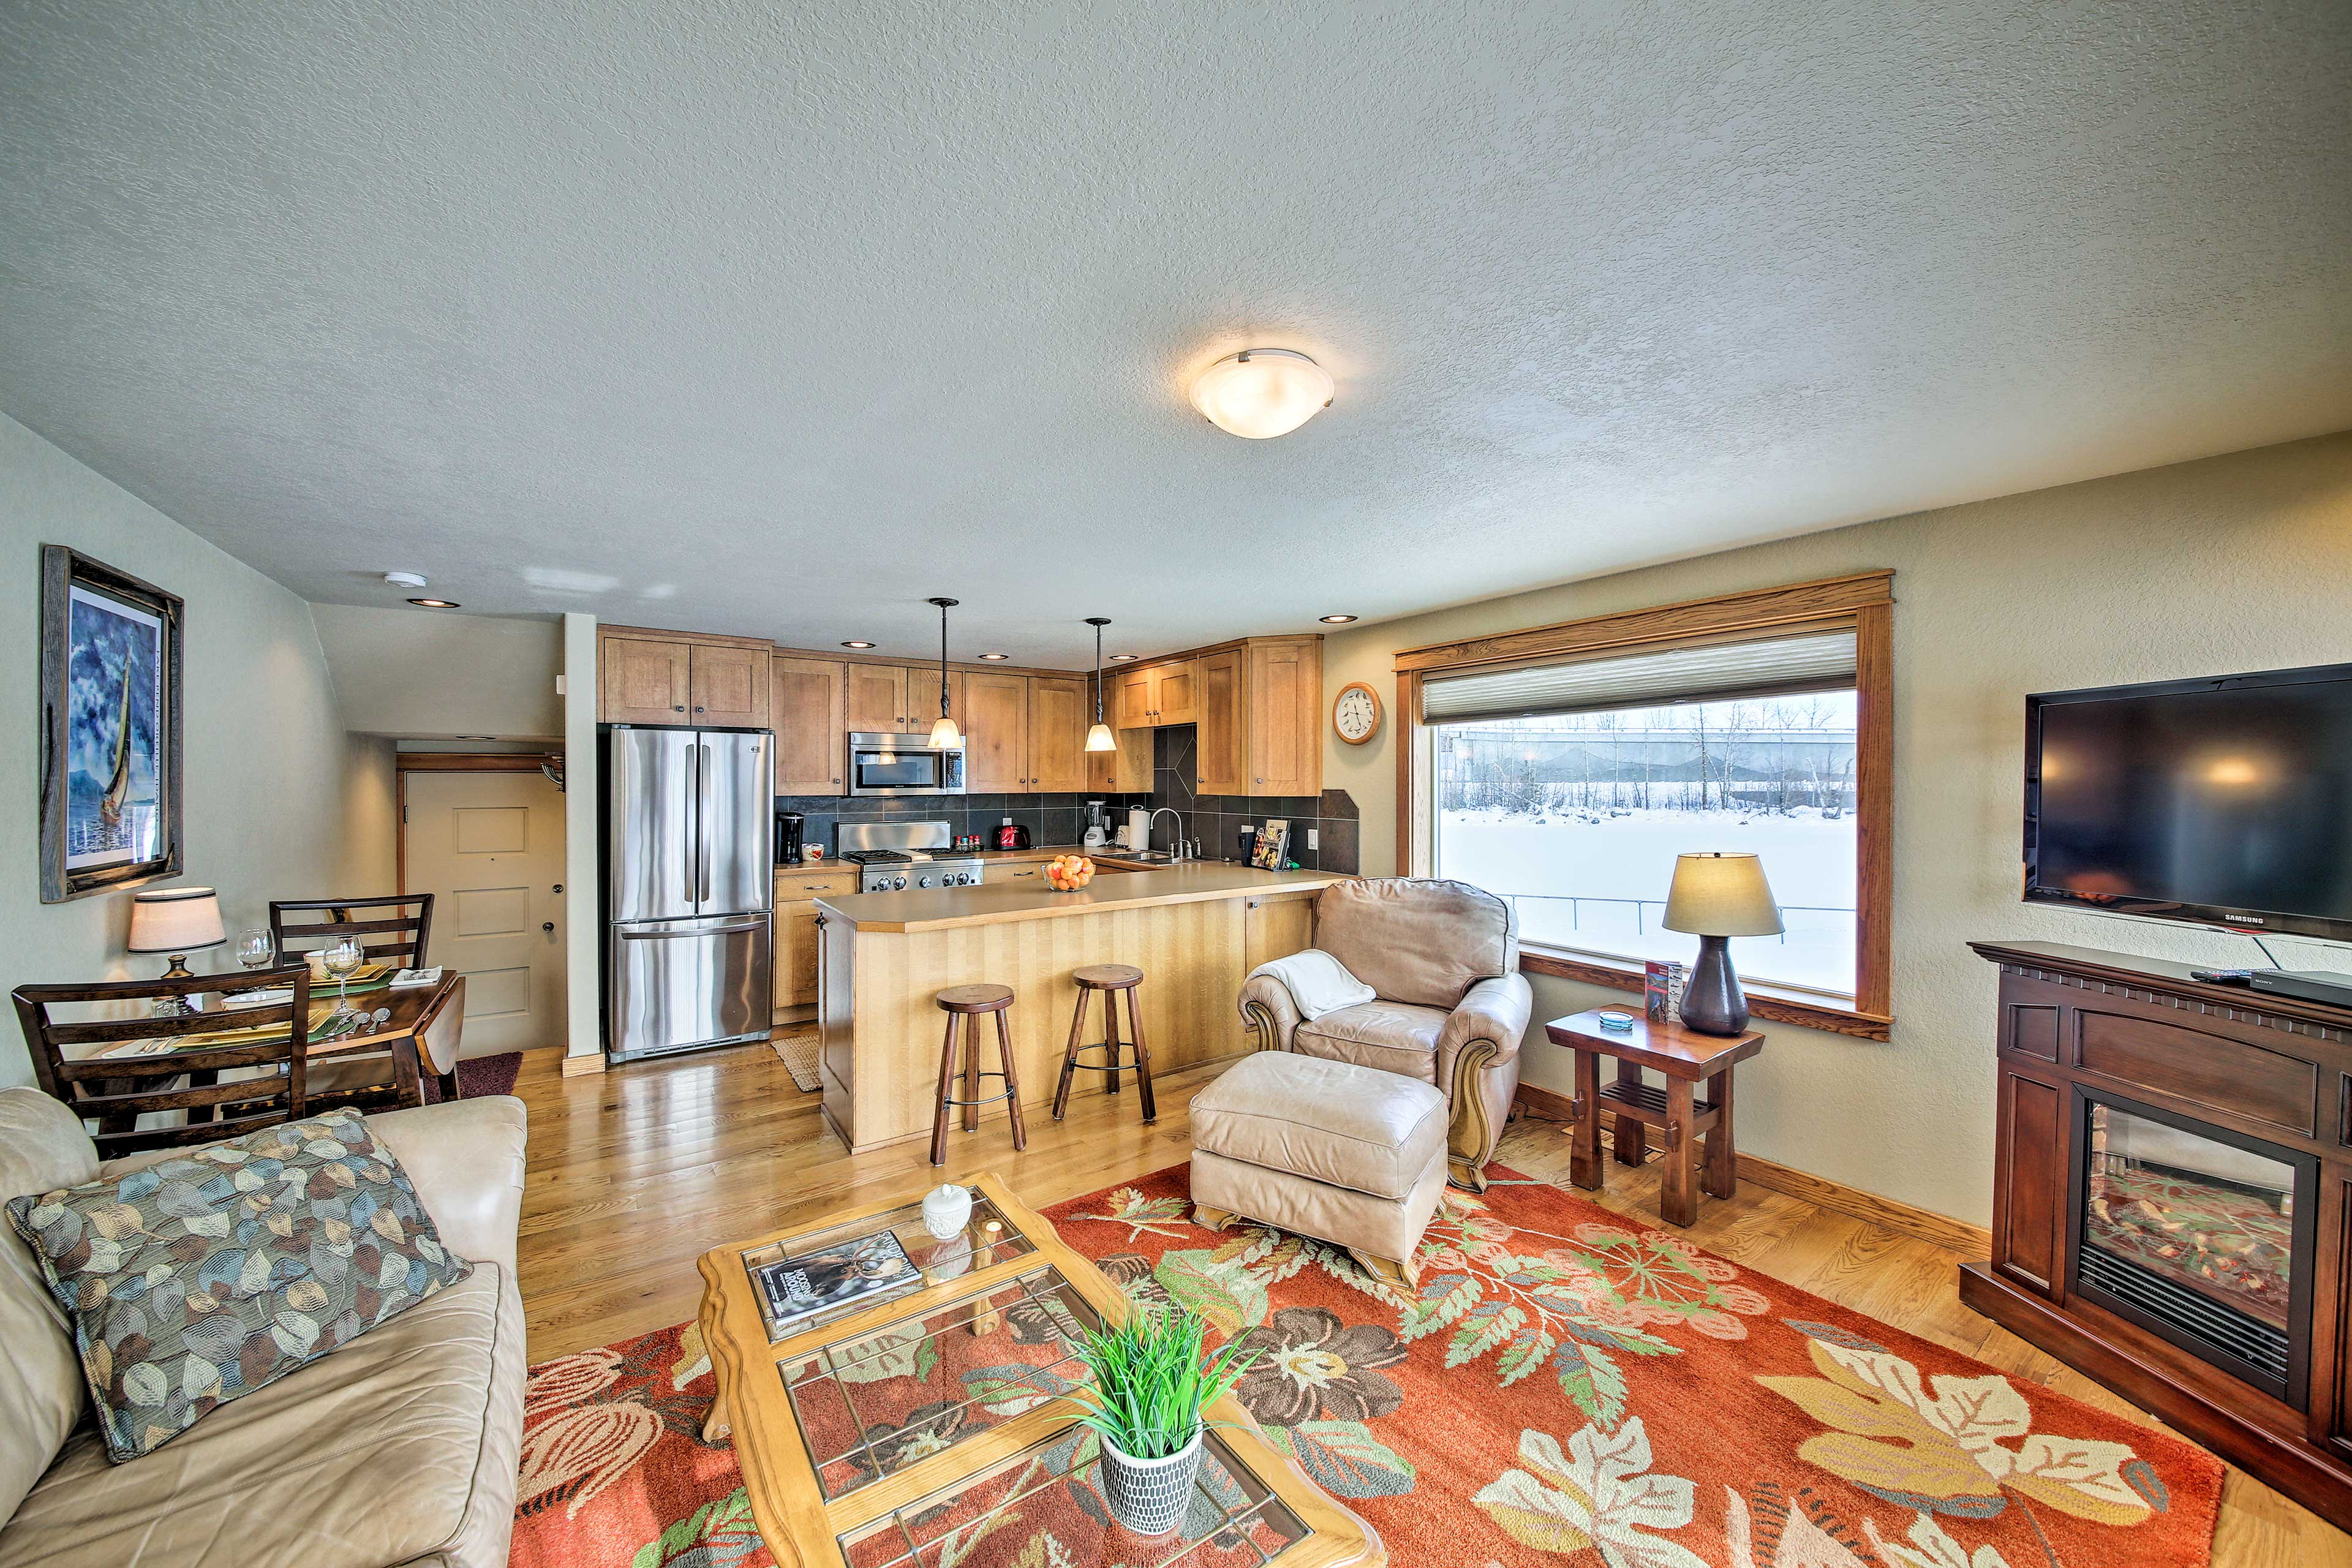 Bring your loved one on a romantic getaway to this vacation rental in Sandpoint.